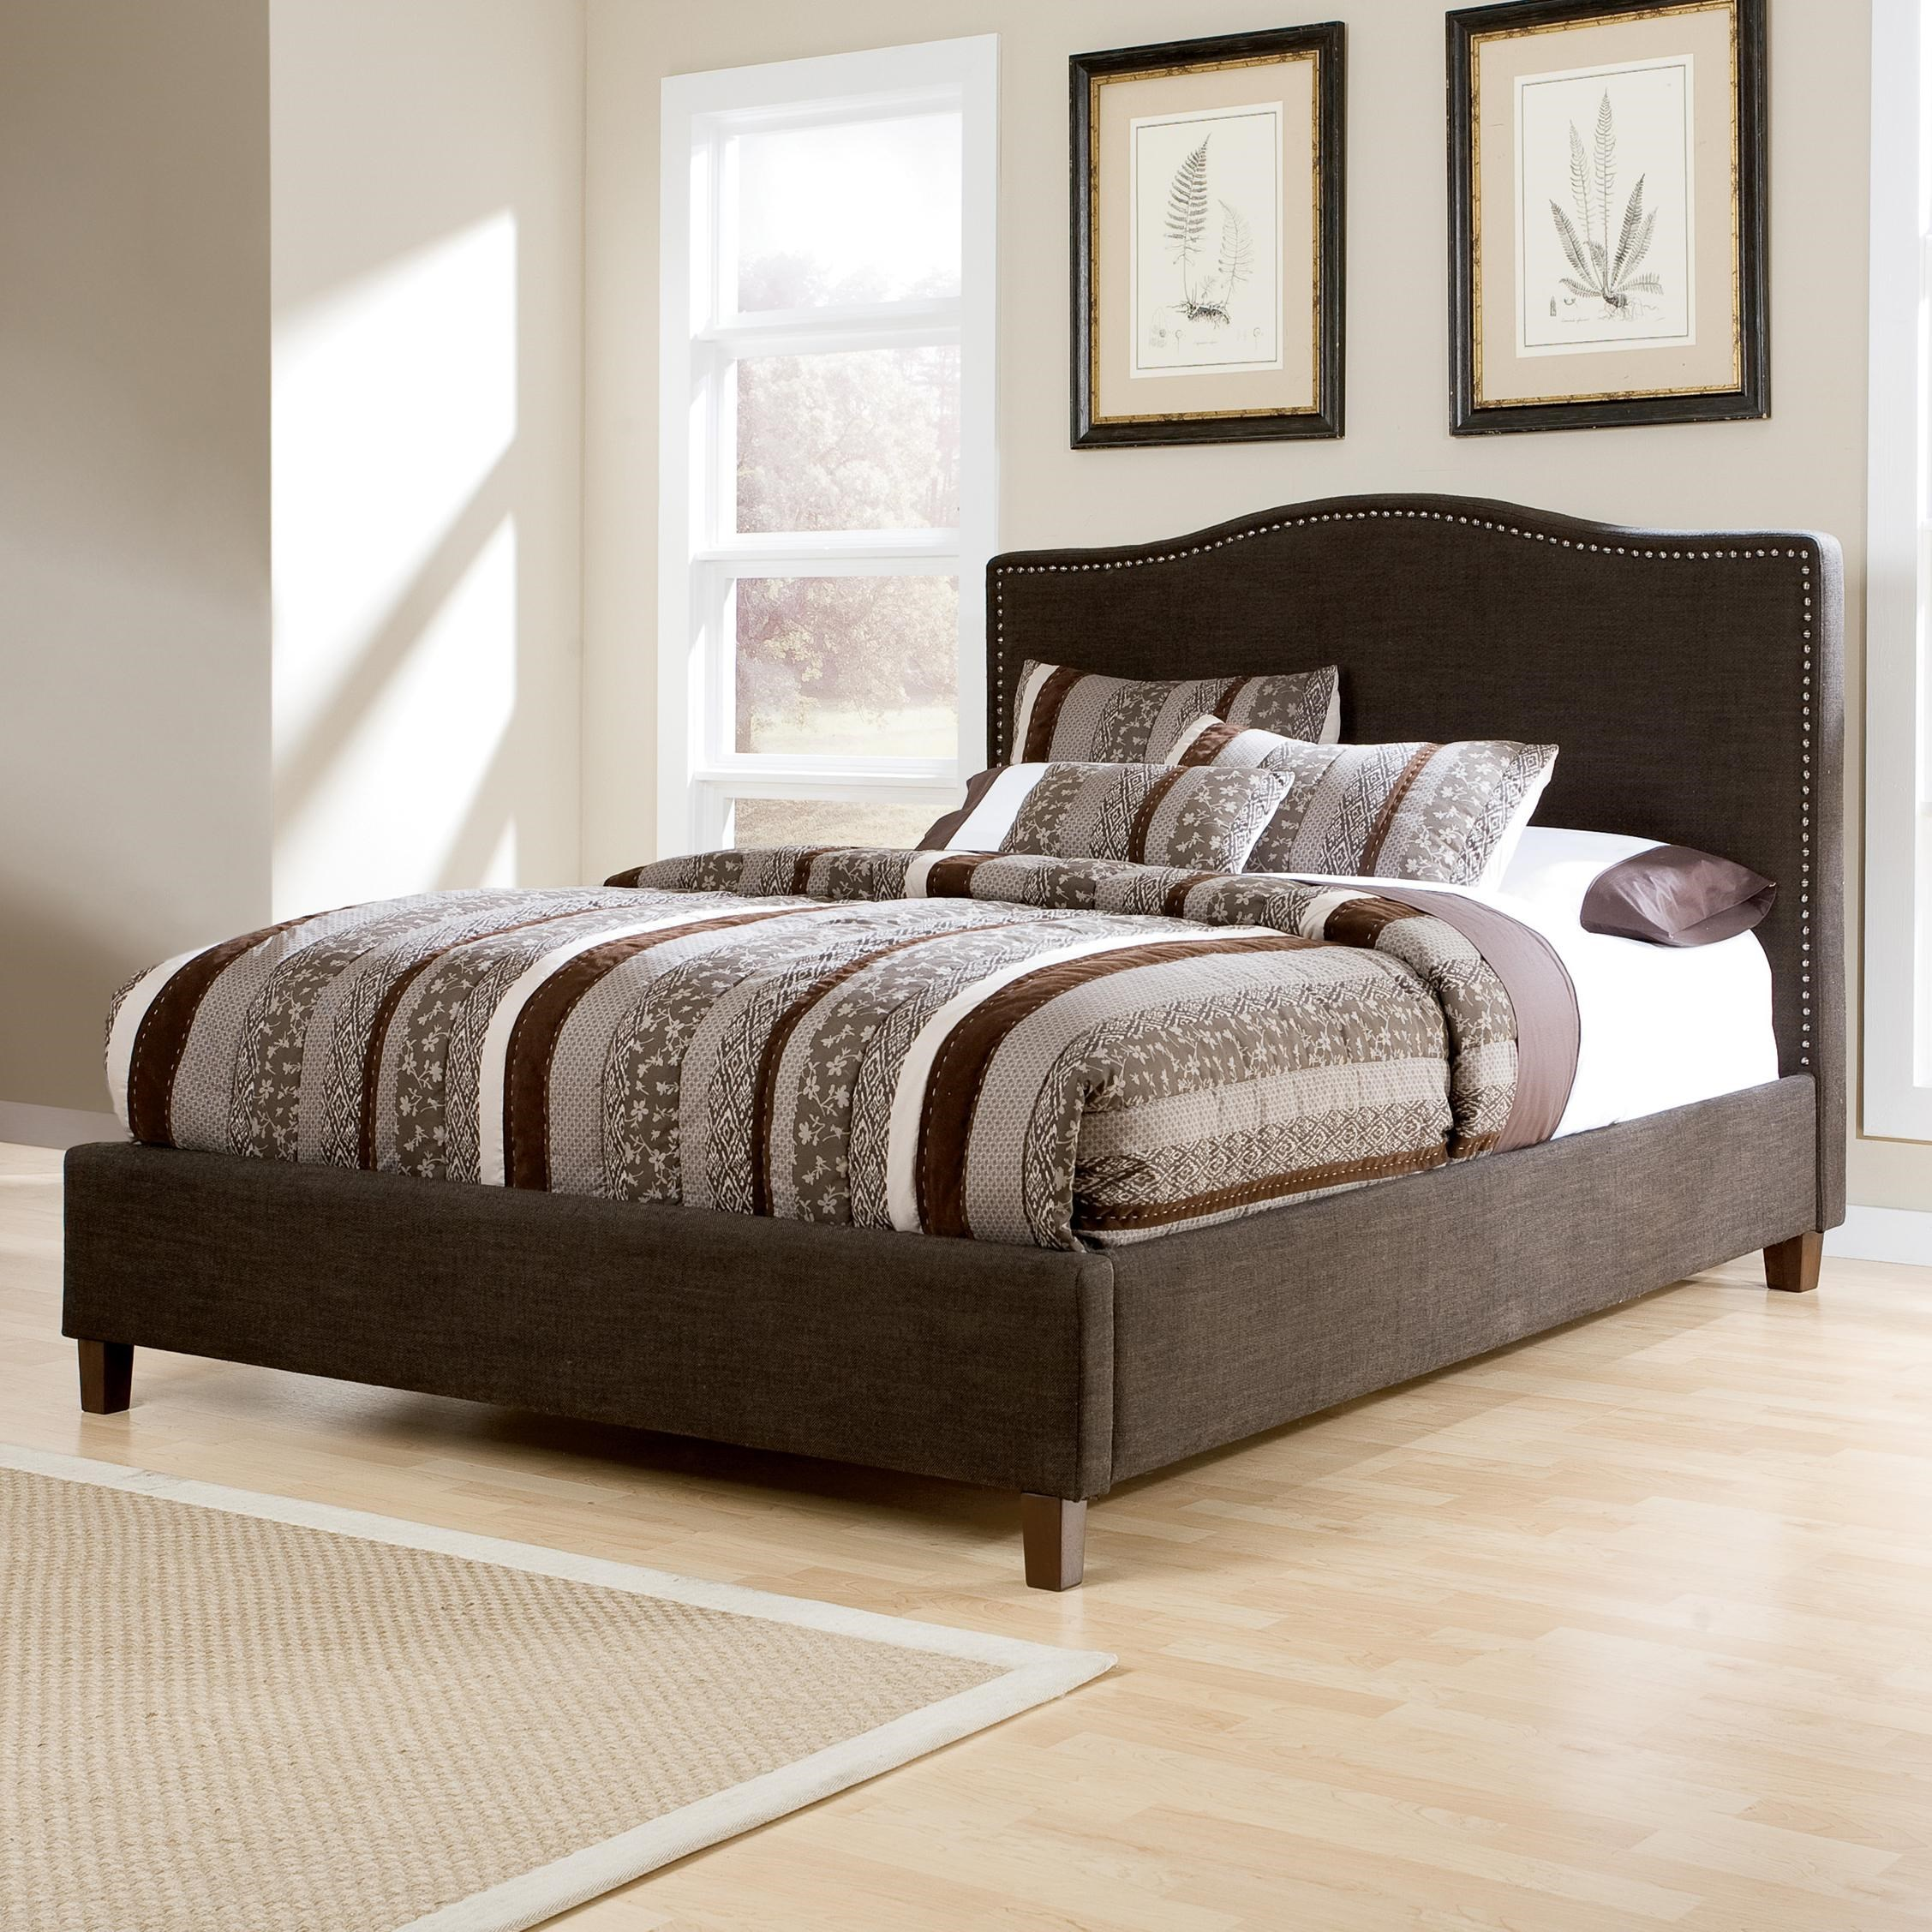 signature design by ashley kasidon queen upholstered bed with brown woven fabric arched headboard u0026 nailhead trim furniture and